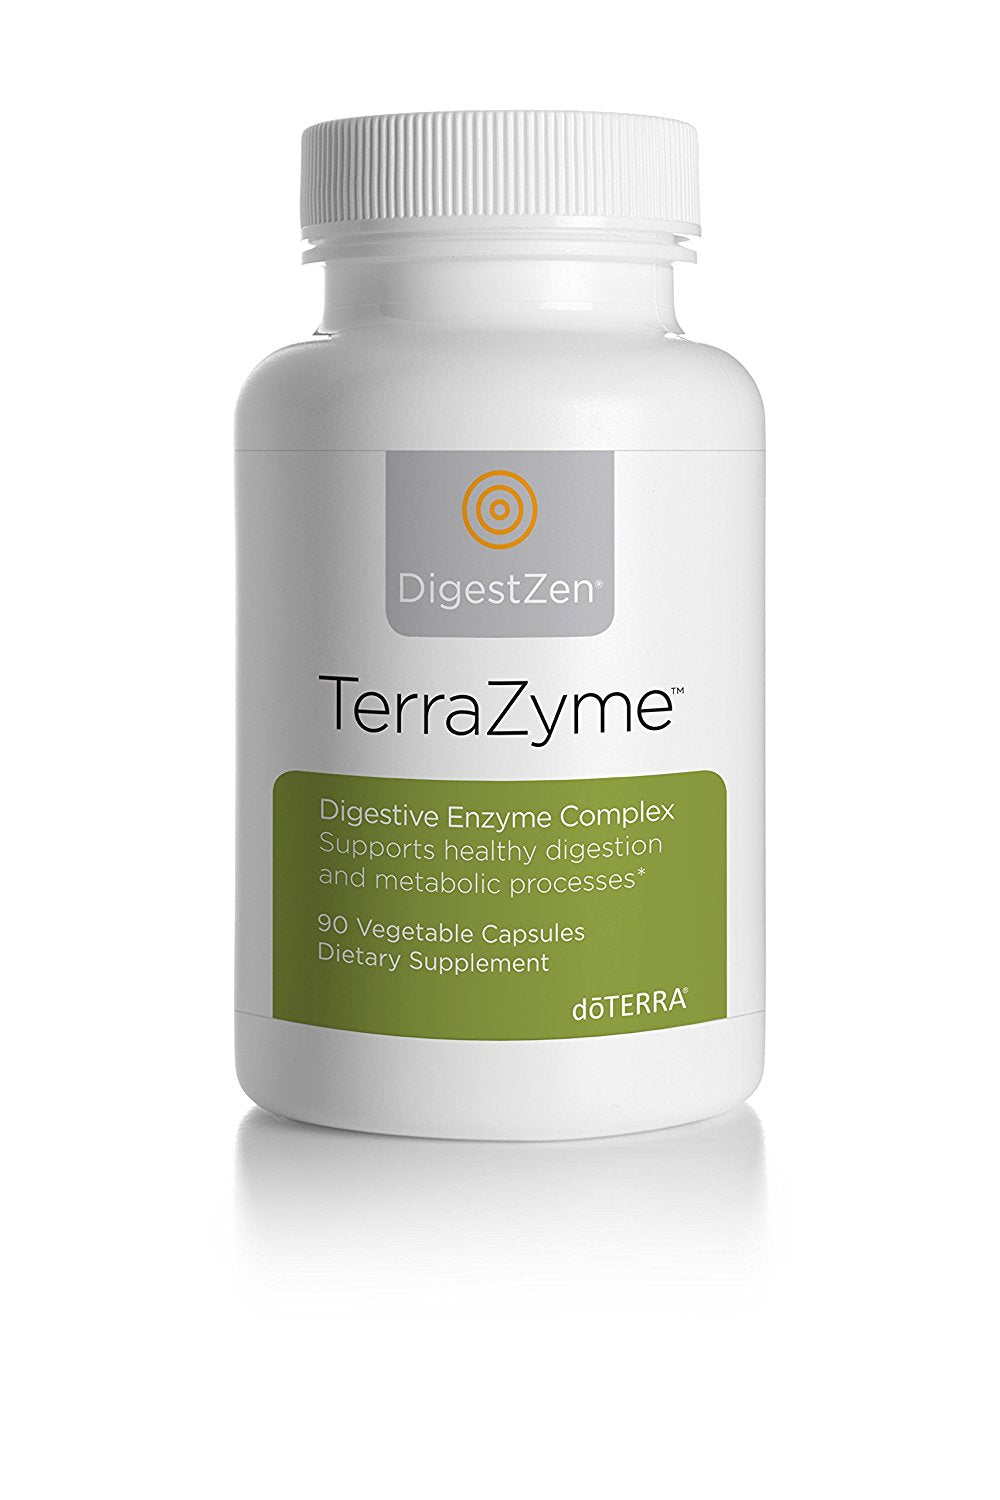 doTERRA TerraZyme Digestive Enzyme Complex - 90 Capsules